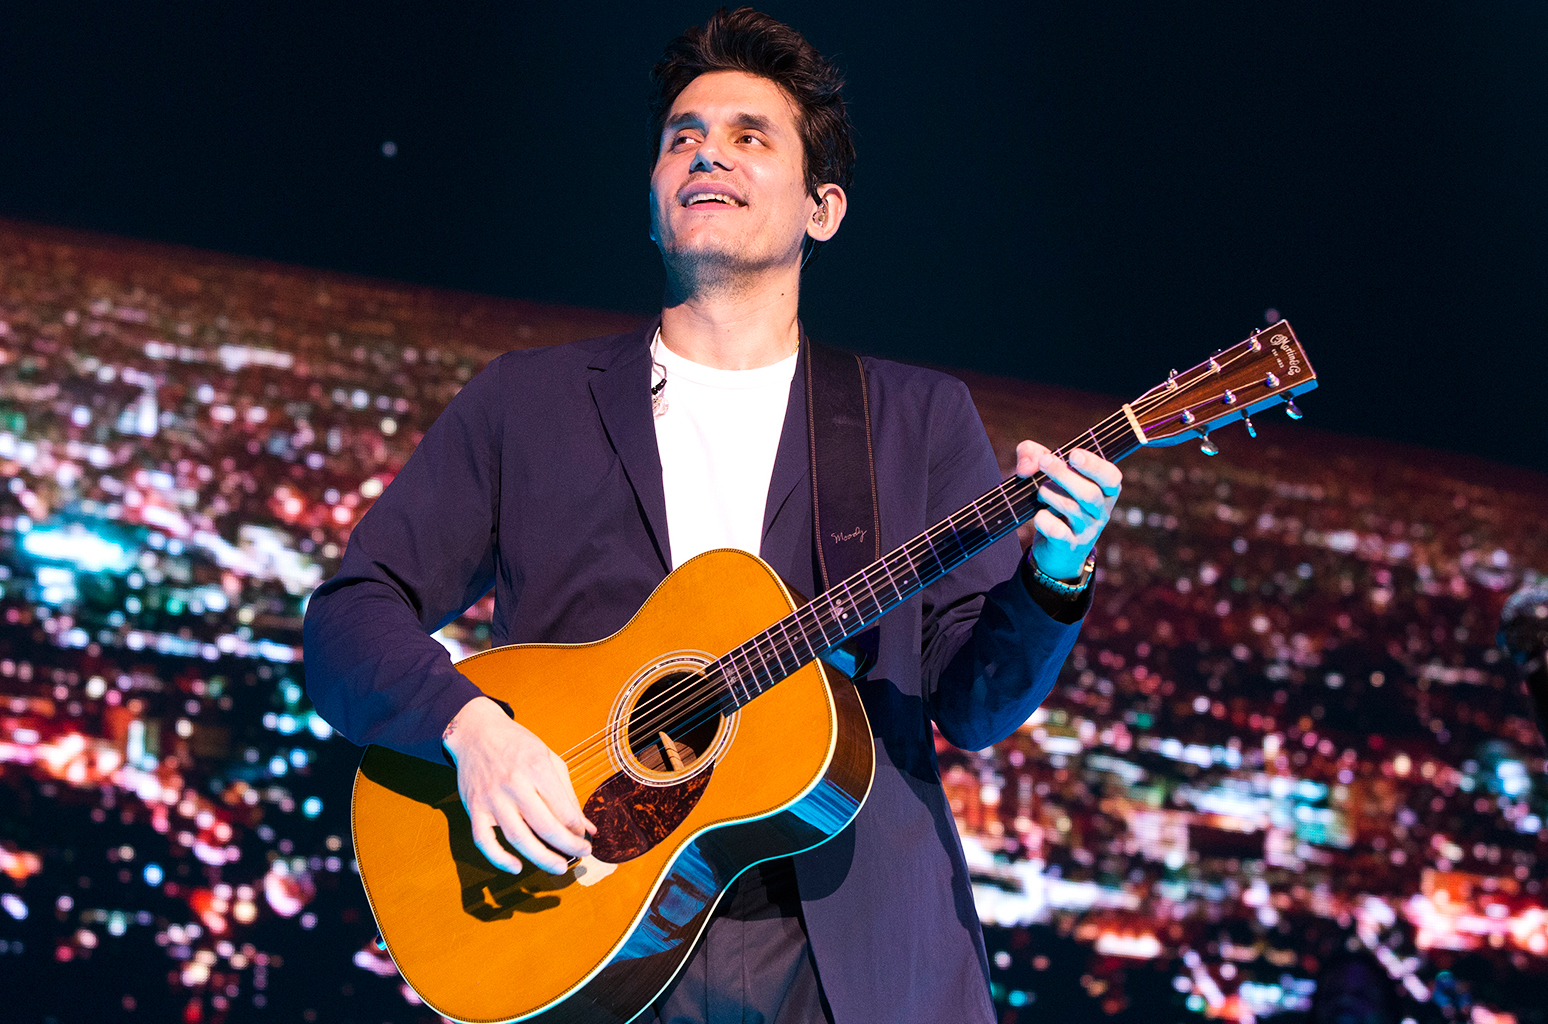 John Mayer to kick off world tour in New Zealand, 2019